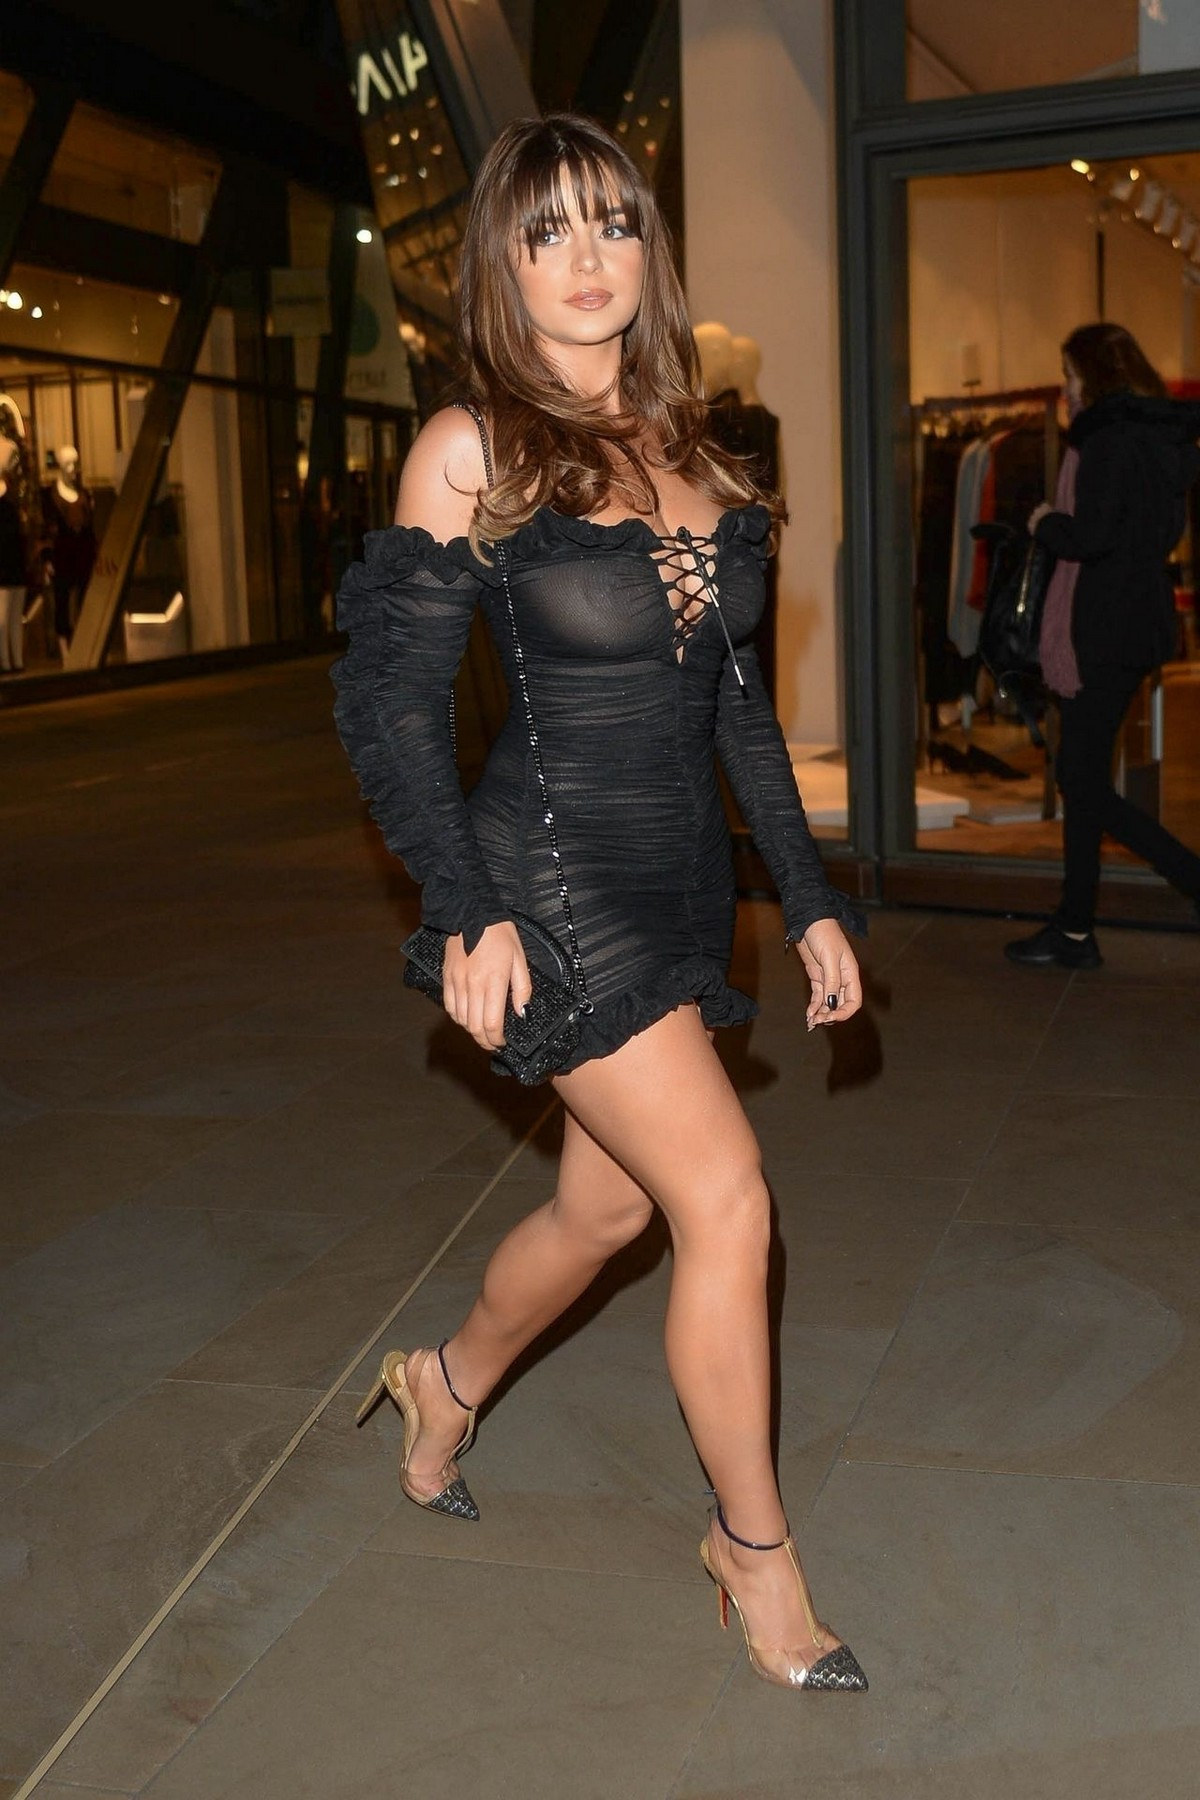 Demi Rose Mawby seen in Stylish Short Dress at The Skinny Tan Choc Range launch party in Madison, London 2019/11/19 20